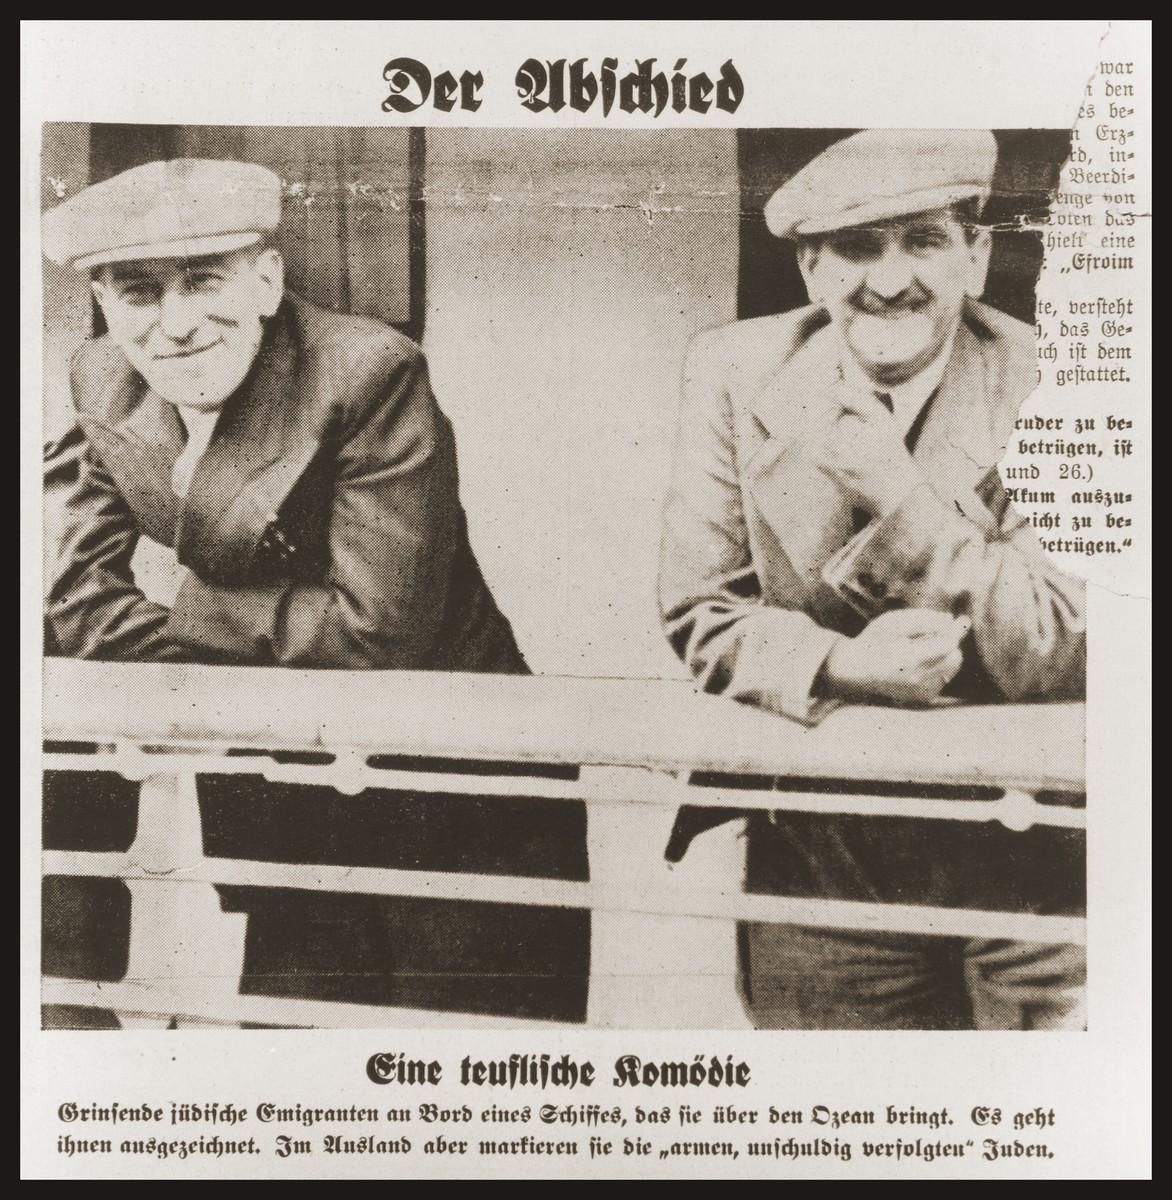 "Photograph appearing on the front page of the Nazi publication, Der Stuermer, of Jewish emigrants on the deck of a ship.    The caption reads, ""The Departure/A devilish comedy/Grinning Jewish emigrants on board a ship that will take them across the ocean.  They are doing very well.  In foreign lands, however, they make themselves out to be 'poor, innocent, persecuted' Jews.""  The headline reads, ""Jews Emigrate/Experiences in the port of Hamburg/The clever comedy of the Jews/All of a sudden they claim to be martyrs/Jews as the makers of anti-Semites [Judengegner] all over the world."""